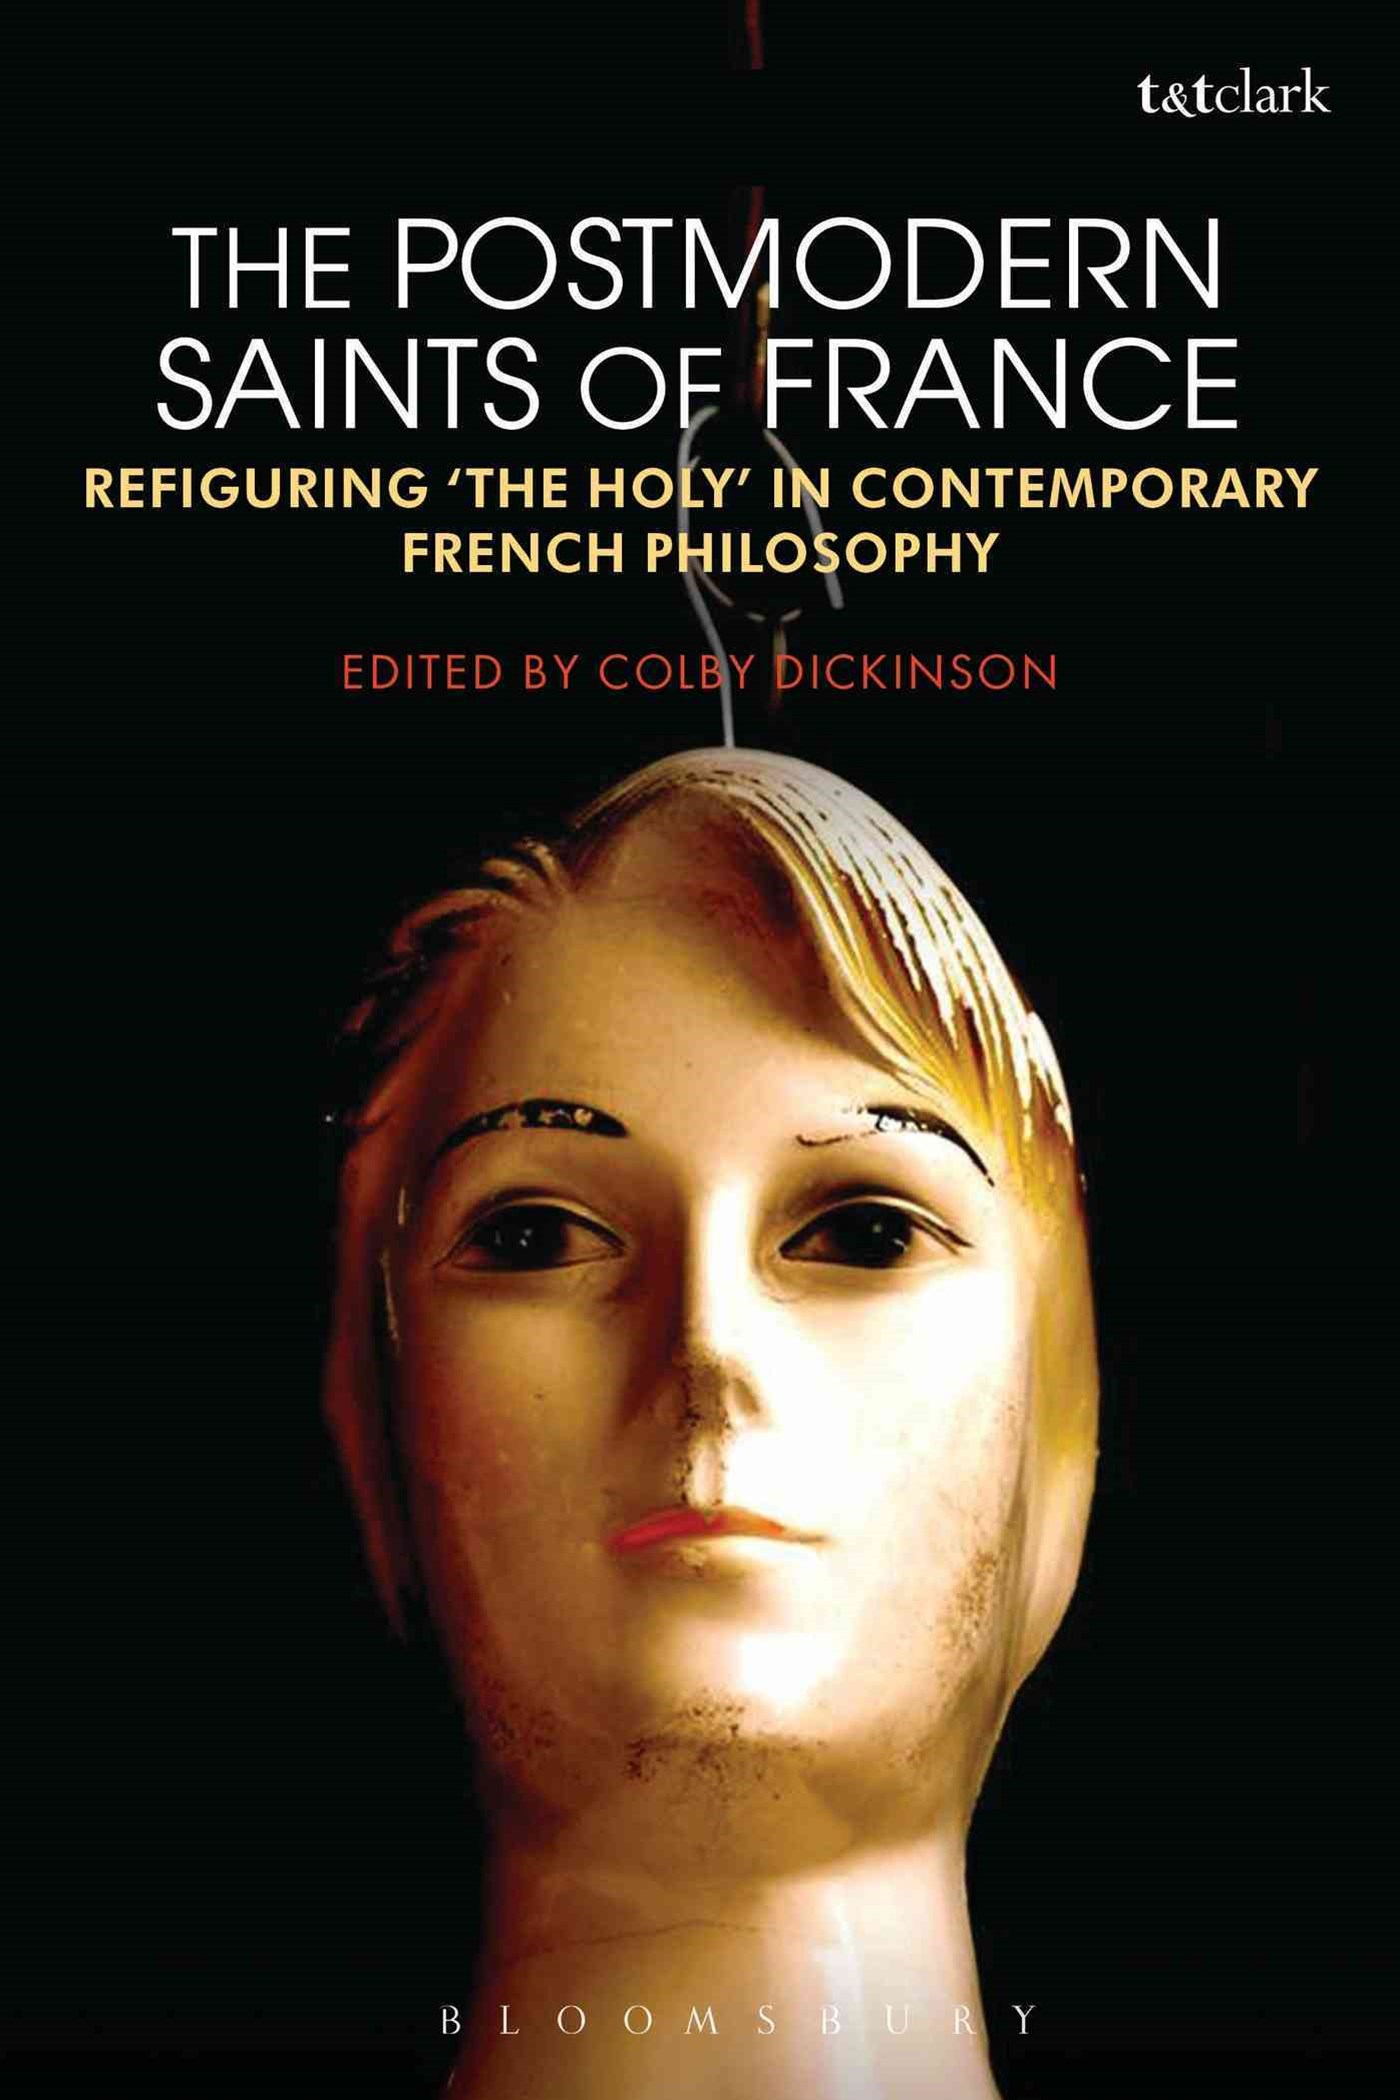 Postmodern Saints of France